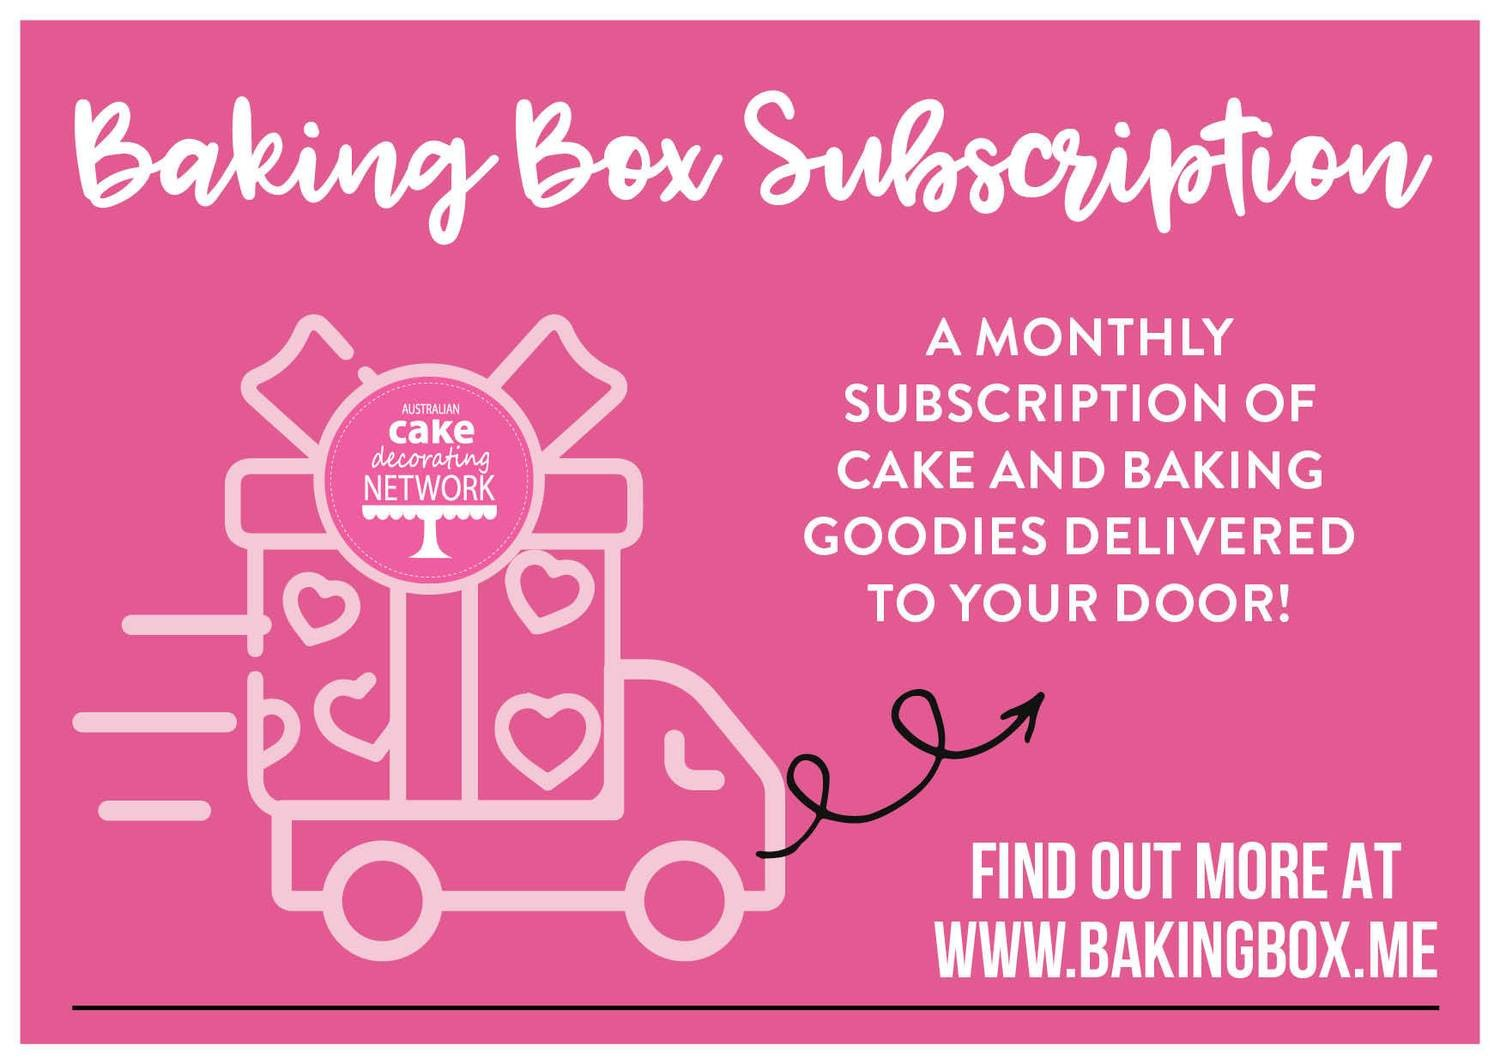 6 month subscription Baking Box